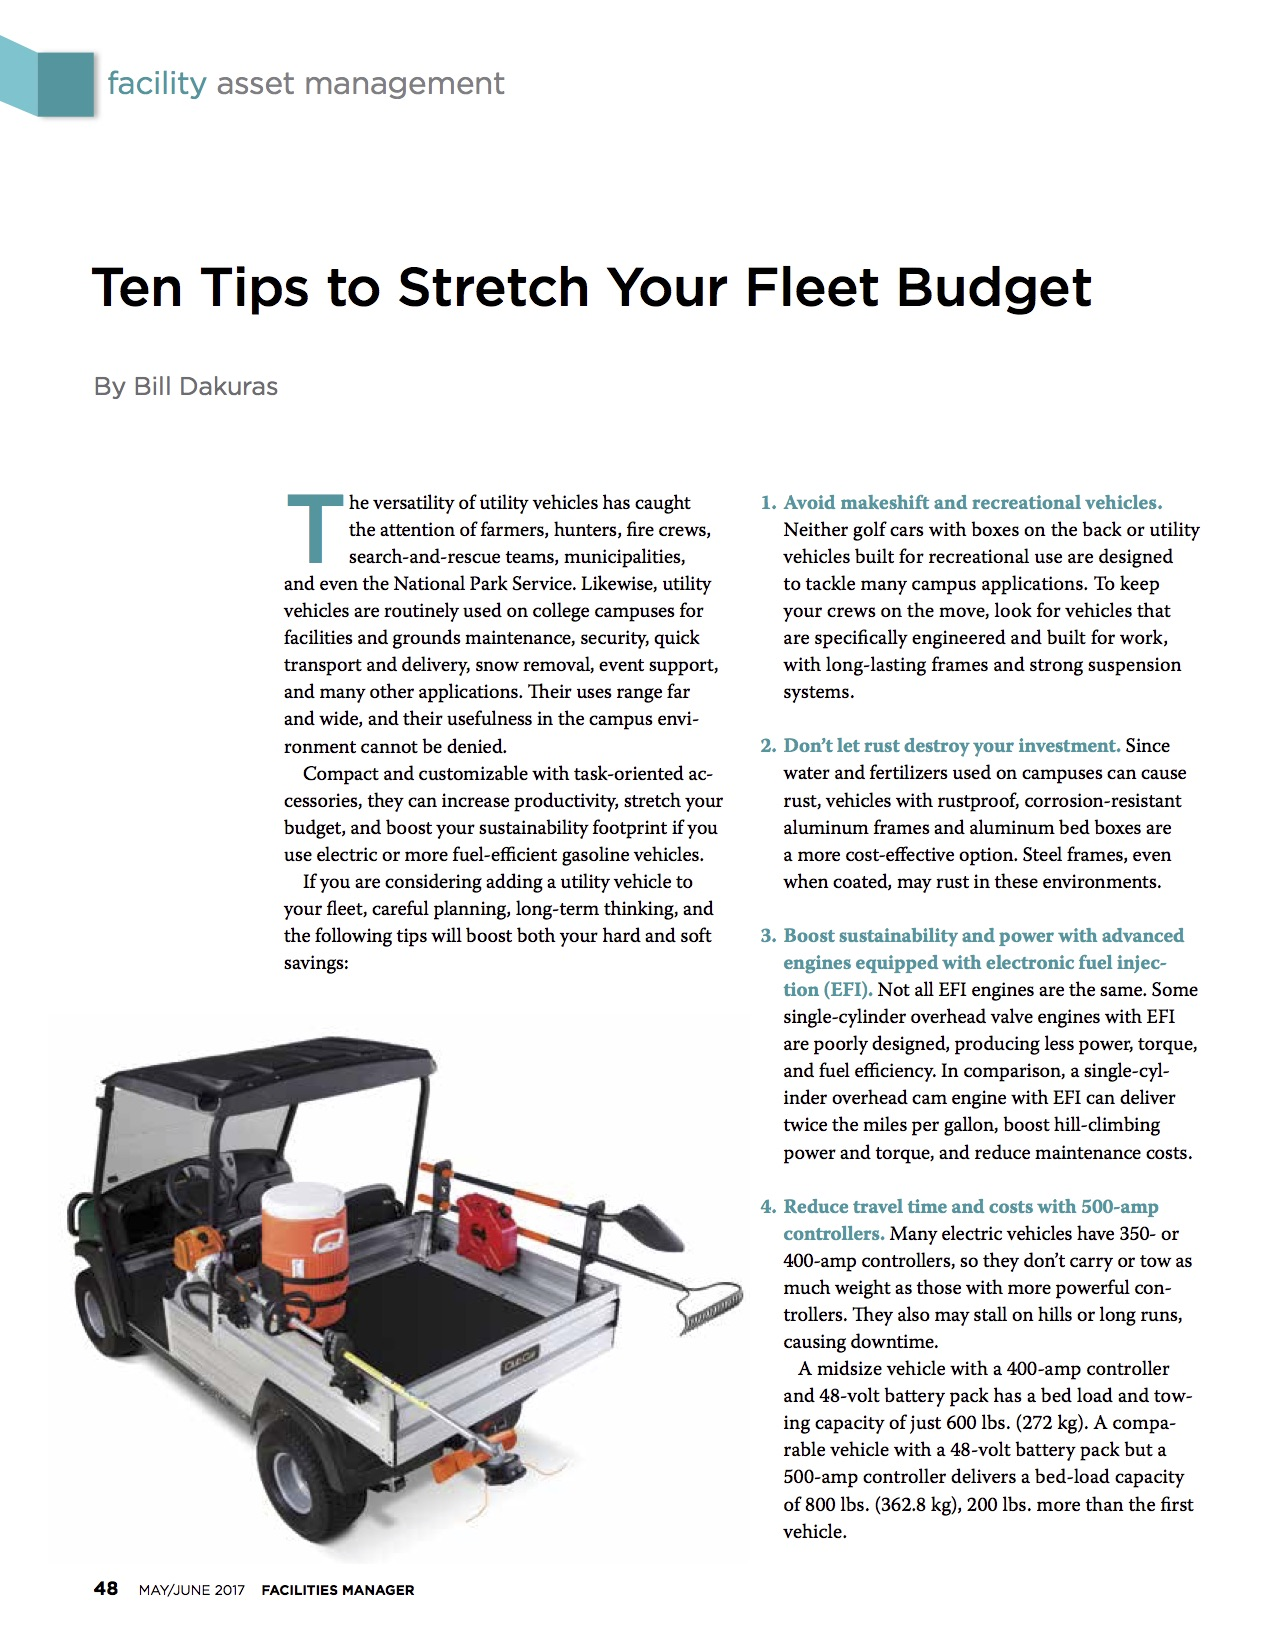 10_Tips_to_Stretch_Your_Fleet_Budget_Facilities_090117